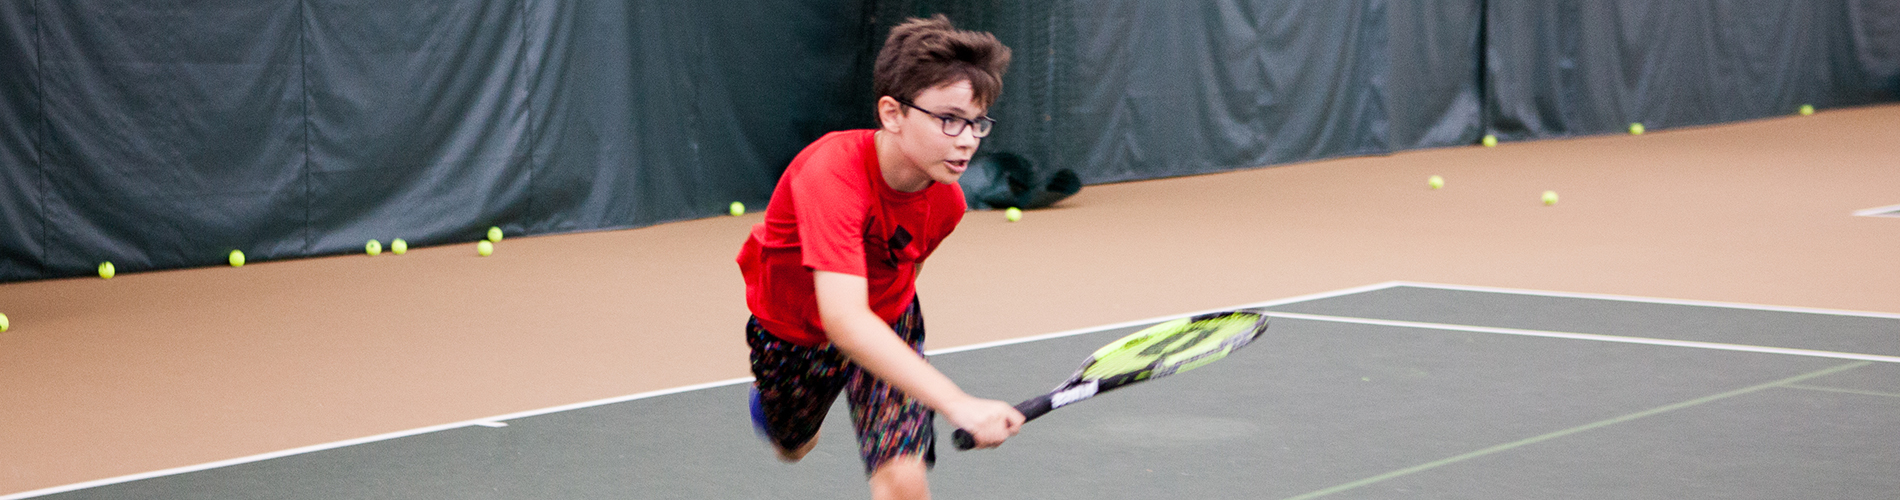 Jillian Curran Photography Kingsbury Club Medfield Tennis 8